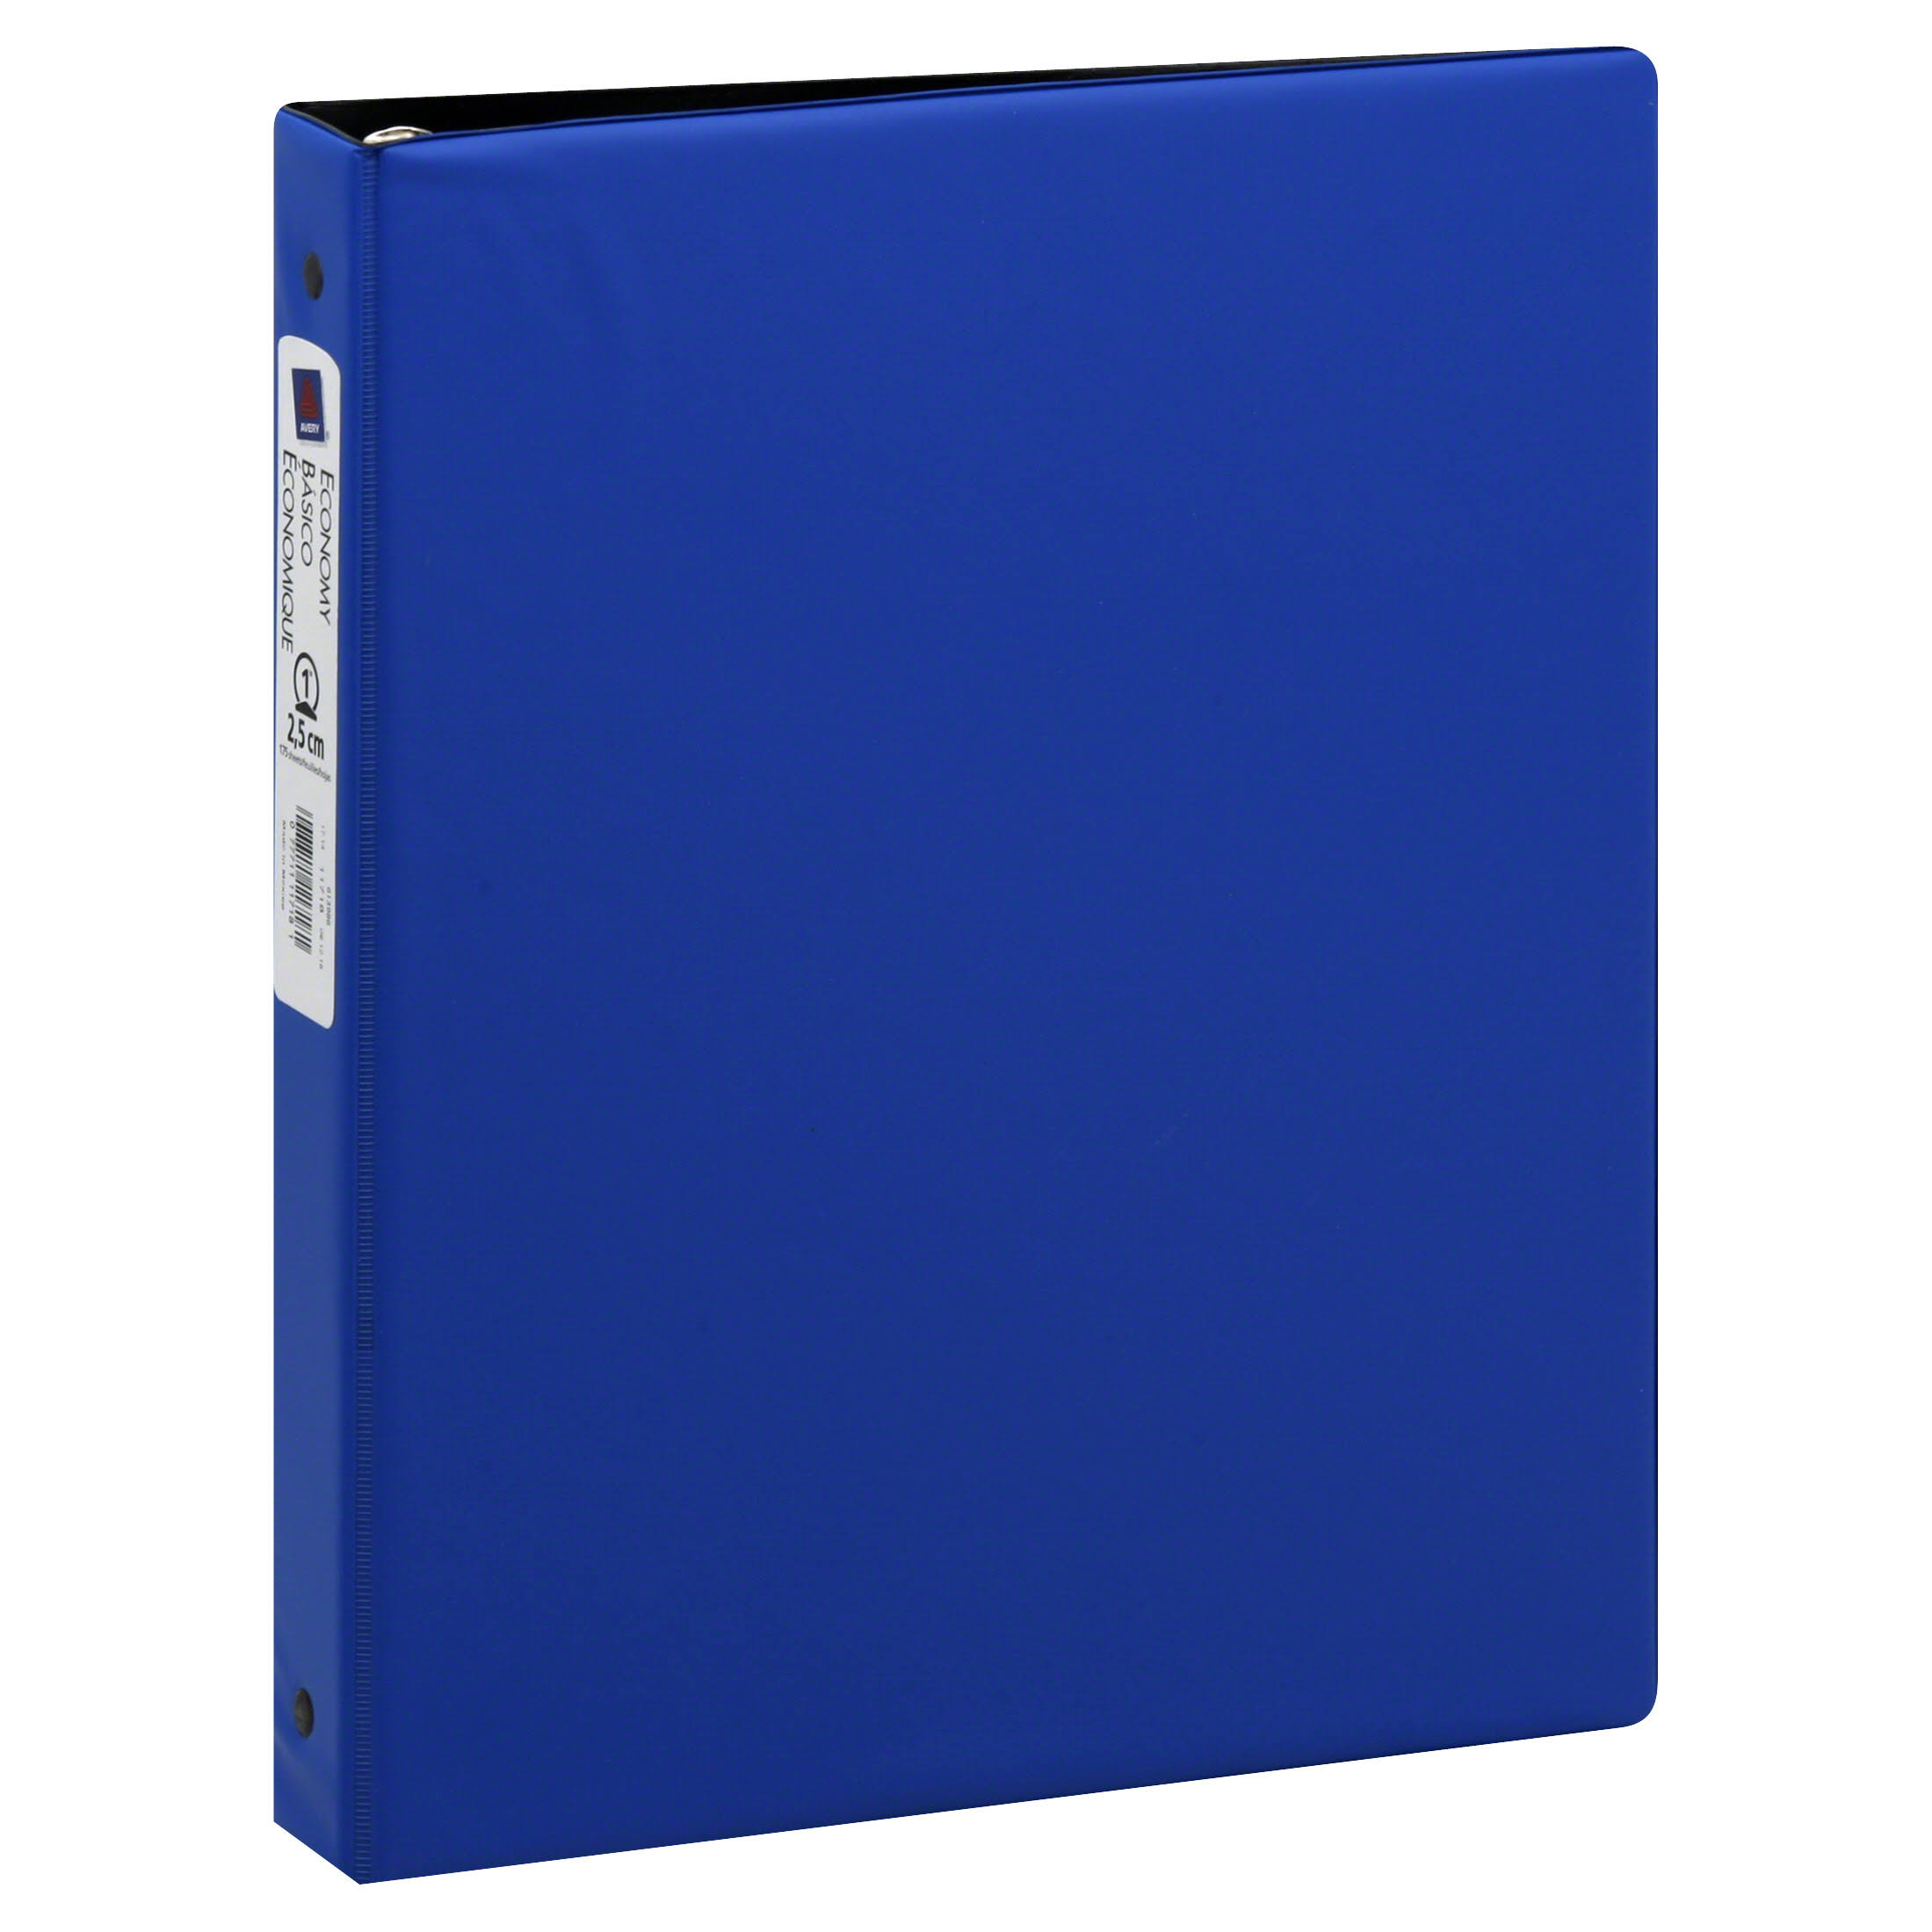 Avery Economy Binder with 1in Round Ring - Assorted Colors